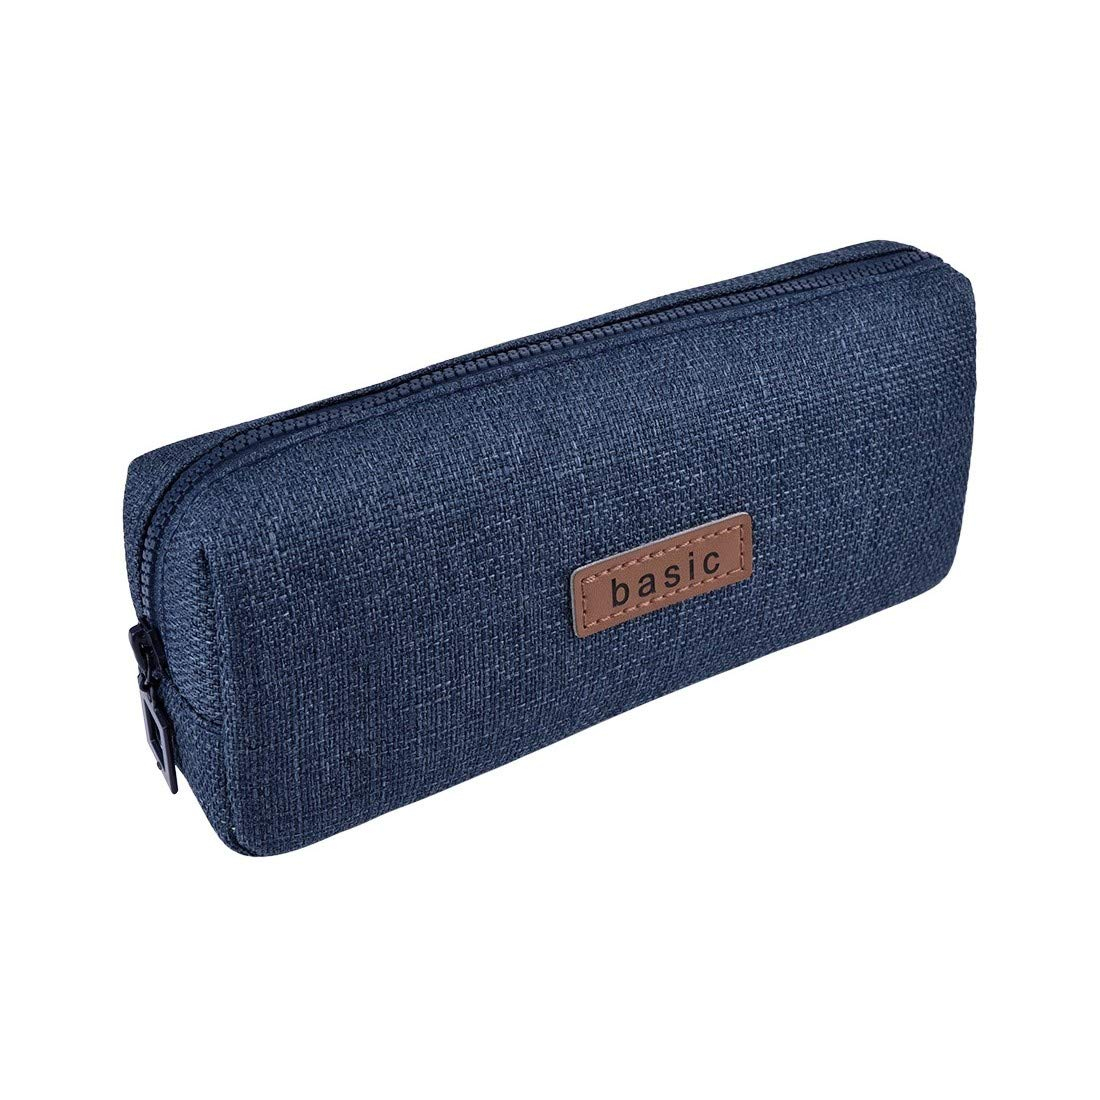 Oyachic Pencil Case Large Capacity Zipper Pen Bag Canvas Student Stationery Box Office School Supplies Coin Pouch Cosmetic Bag (Dark Blue)